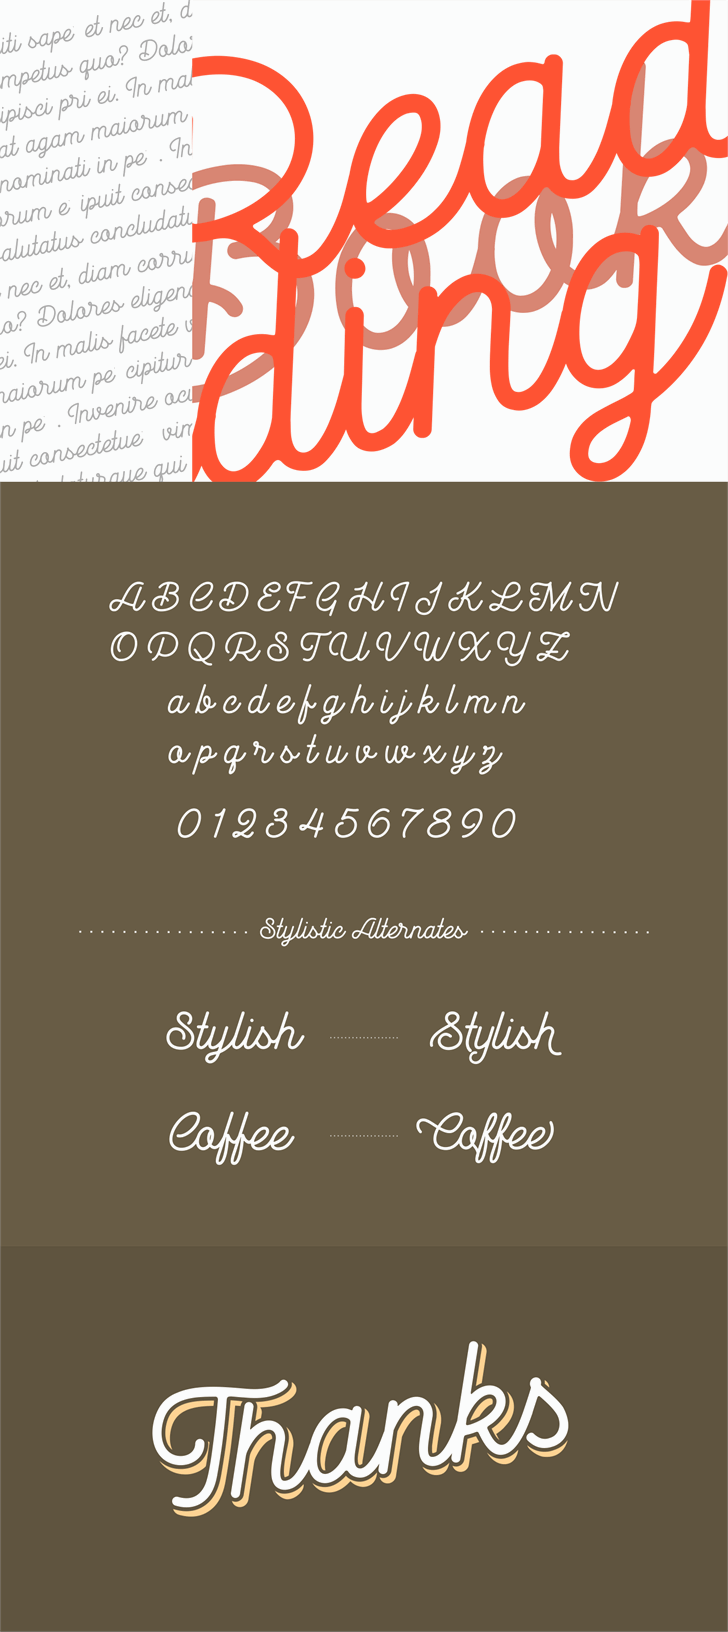 Image for Goldana Base font